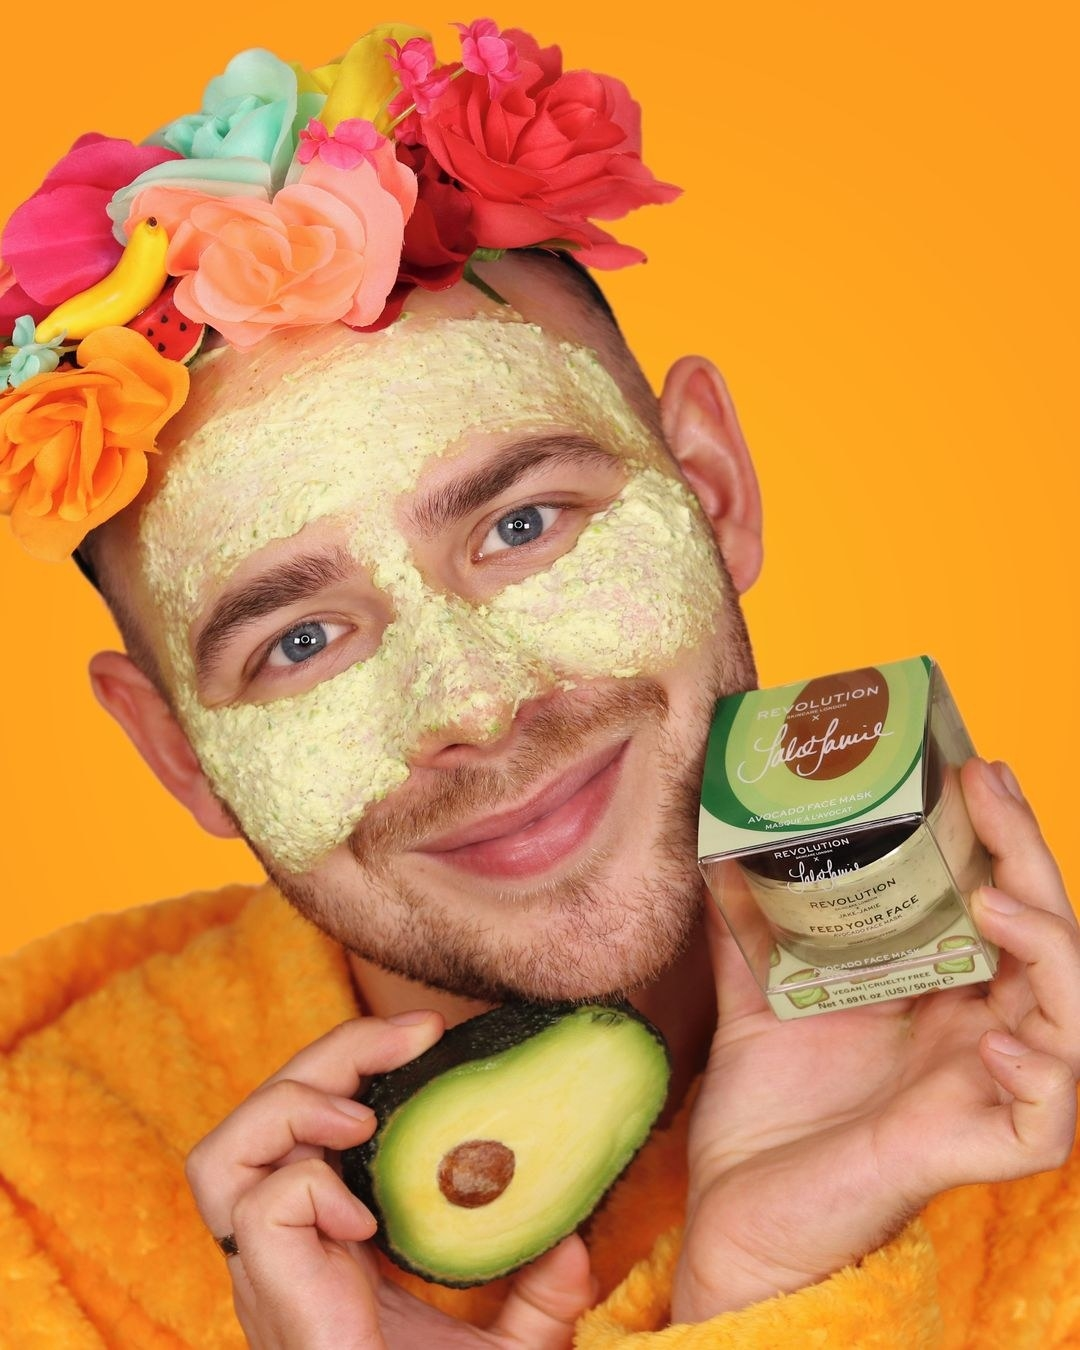 A person with the avocado mask on their face, holding an avocado and the mask while looking into the camera